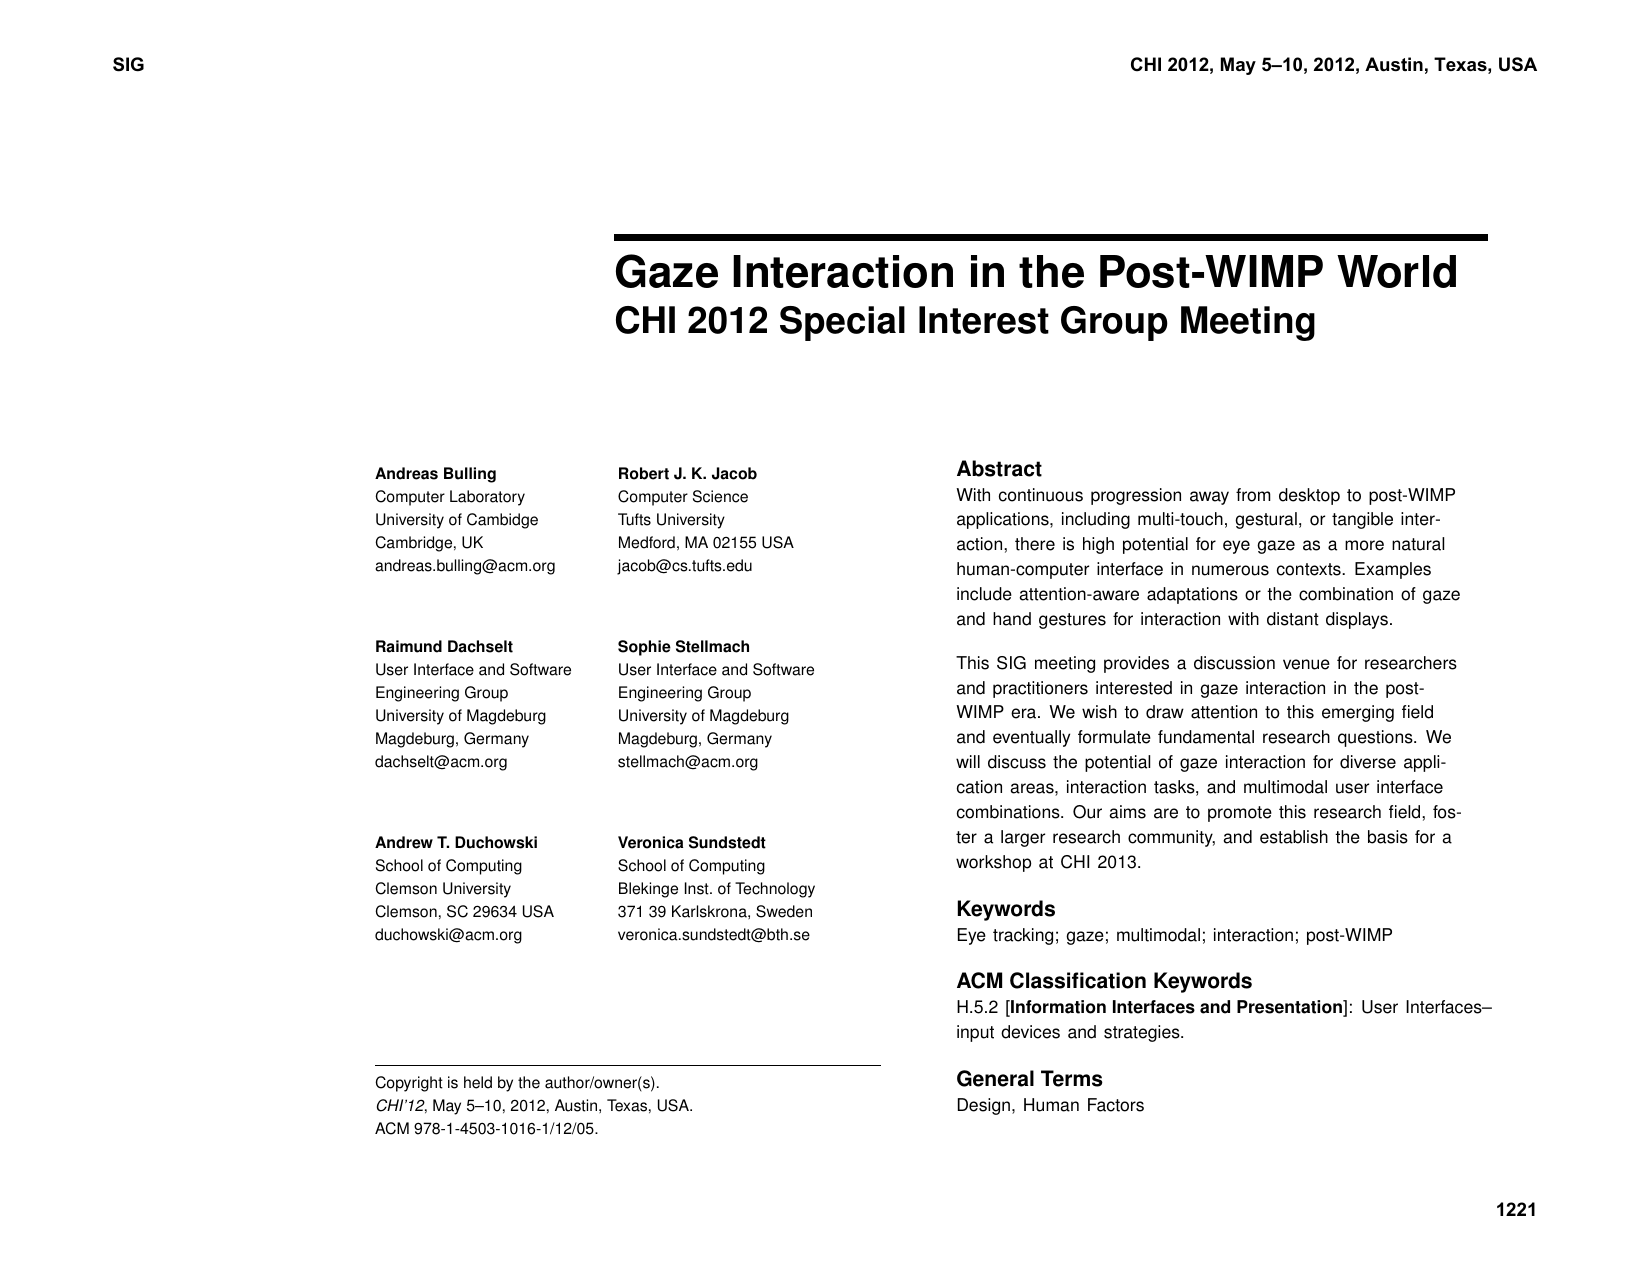 Gaze interaction in the post-WIMP world